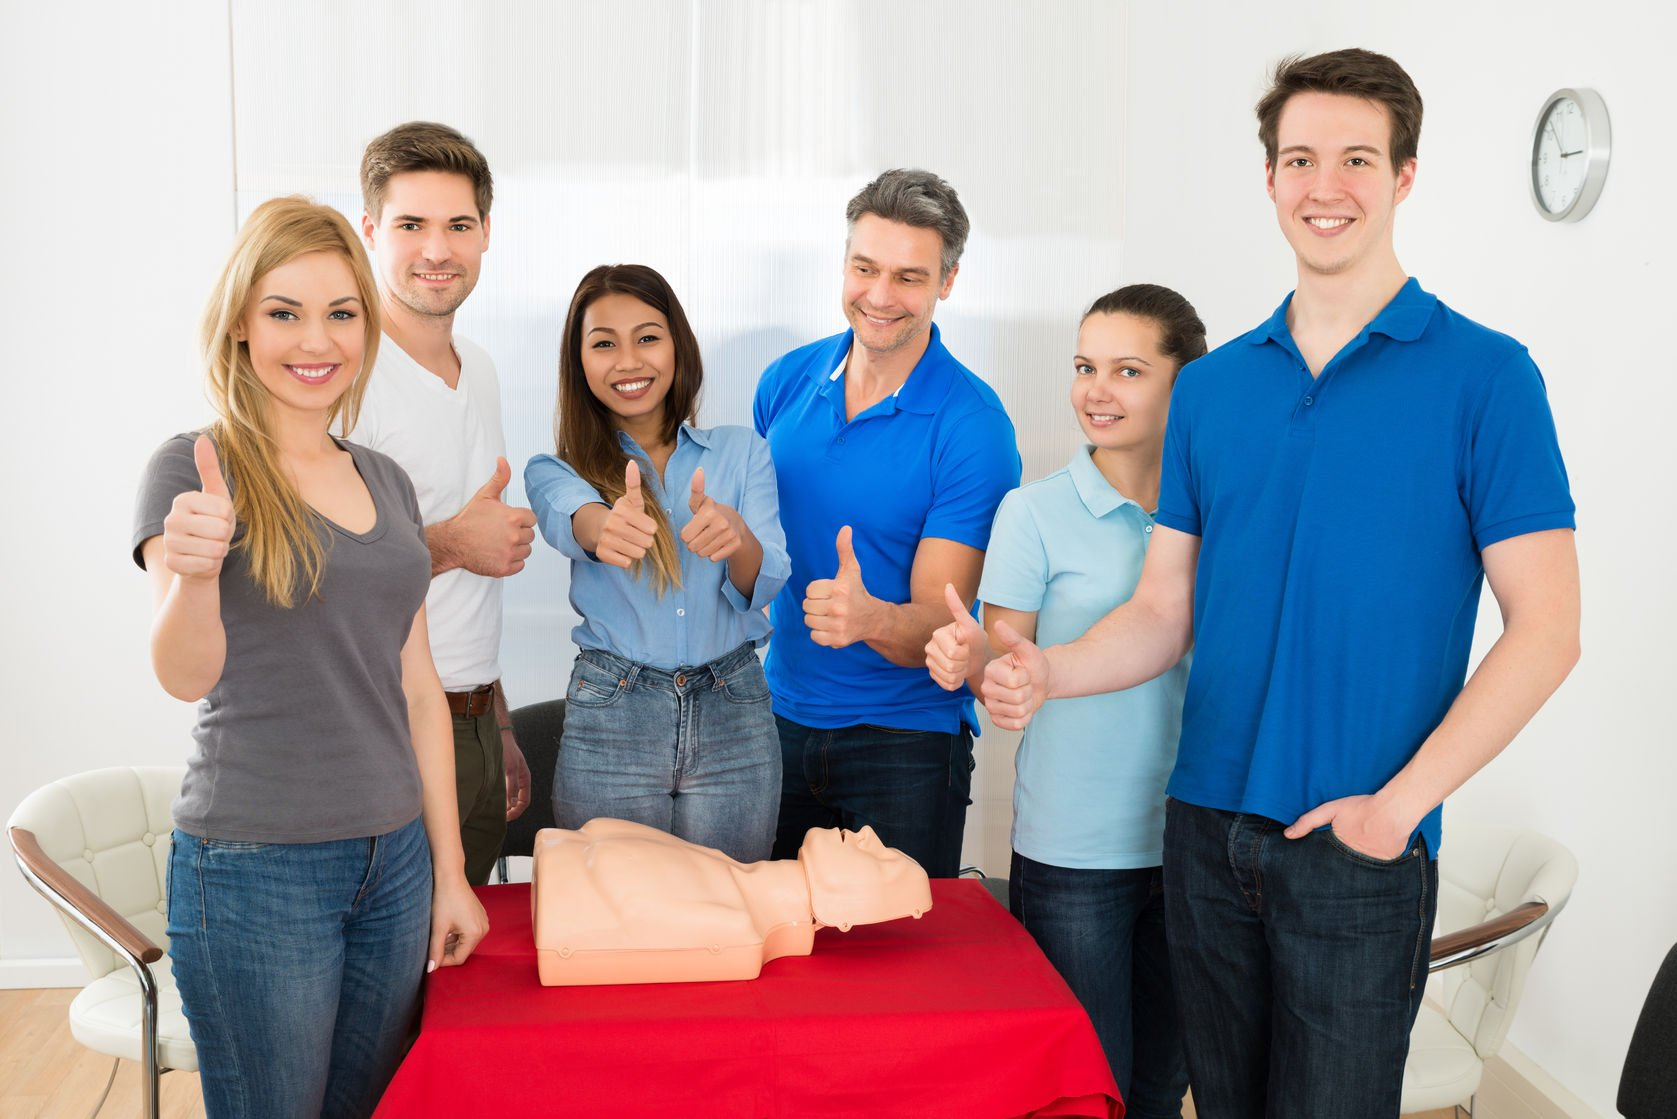 First Aid Courses in Basildon, Essex for Individuals & Companies